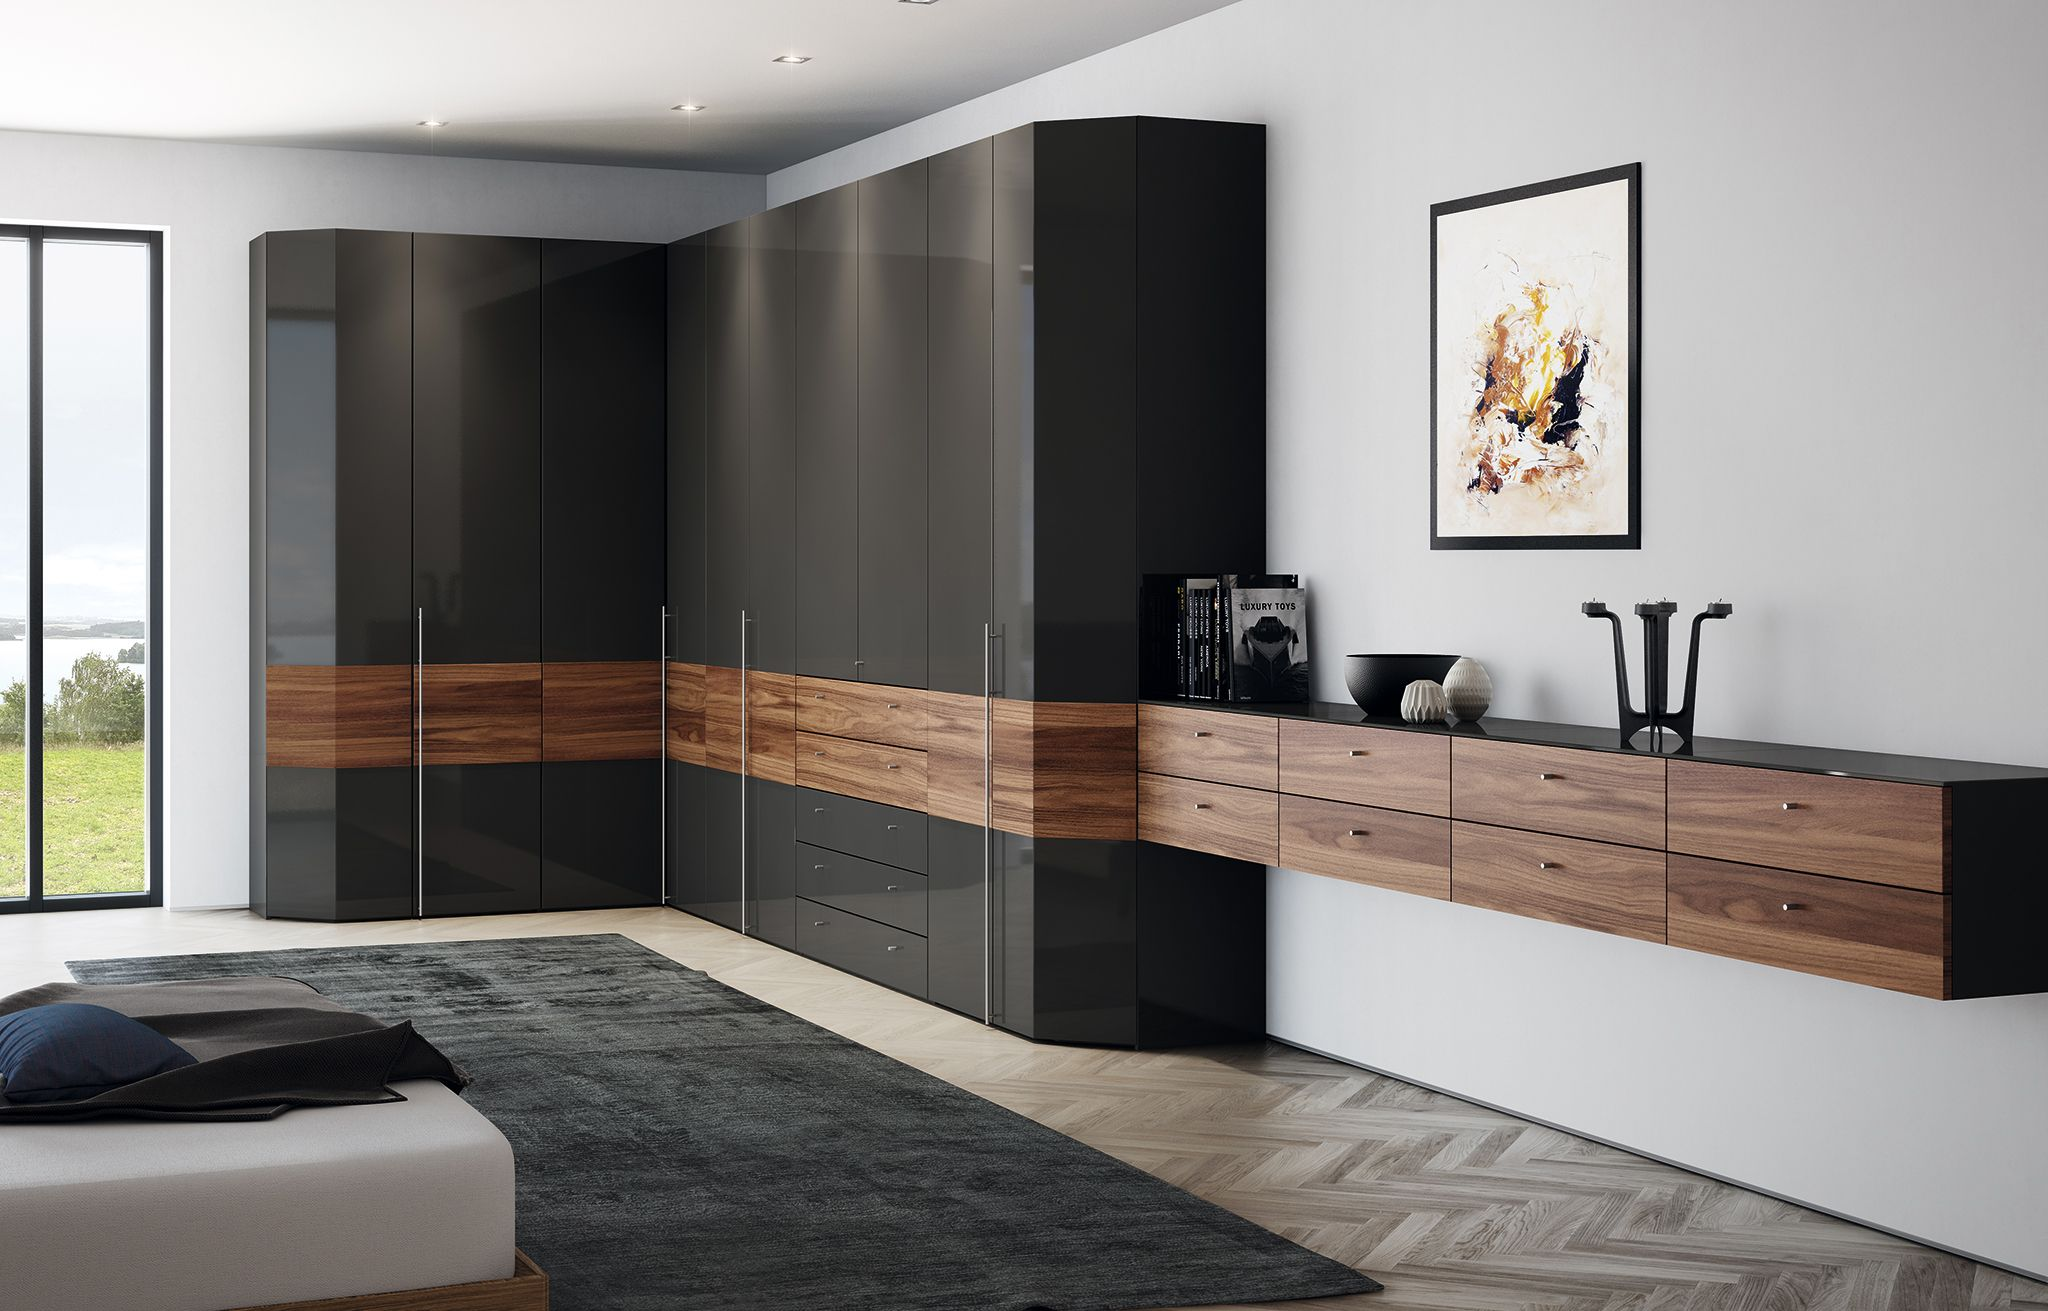 """While at IMM Cologne, we saw huelsta's latest additions to their """"Multi-Forma II"""" collection. Multi-Format II is an incredibly versatile wardrobe and walk-in closet system that can be personalized to meet your specific needs!"""